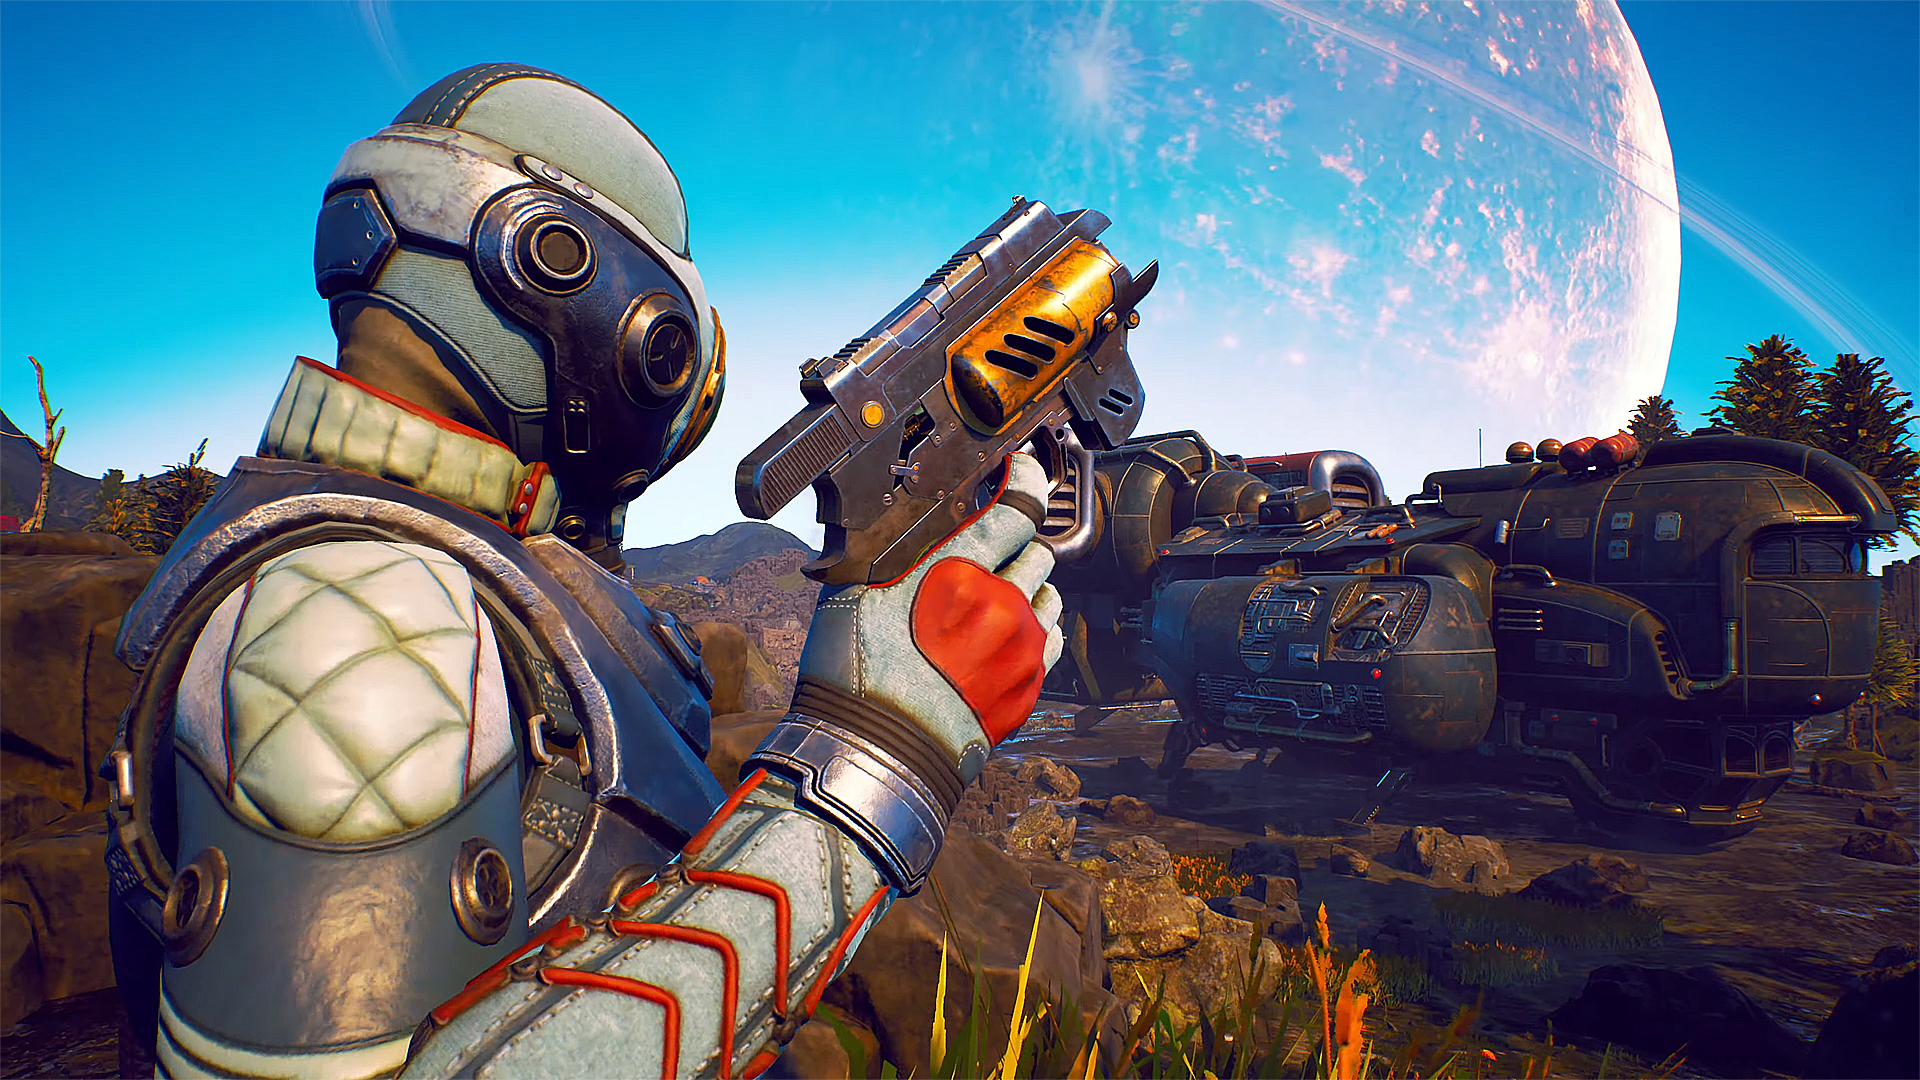 What You Should Know Before Playing The Outer Worlds